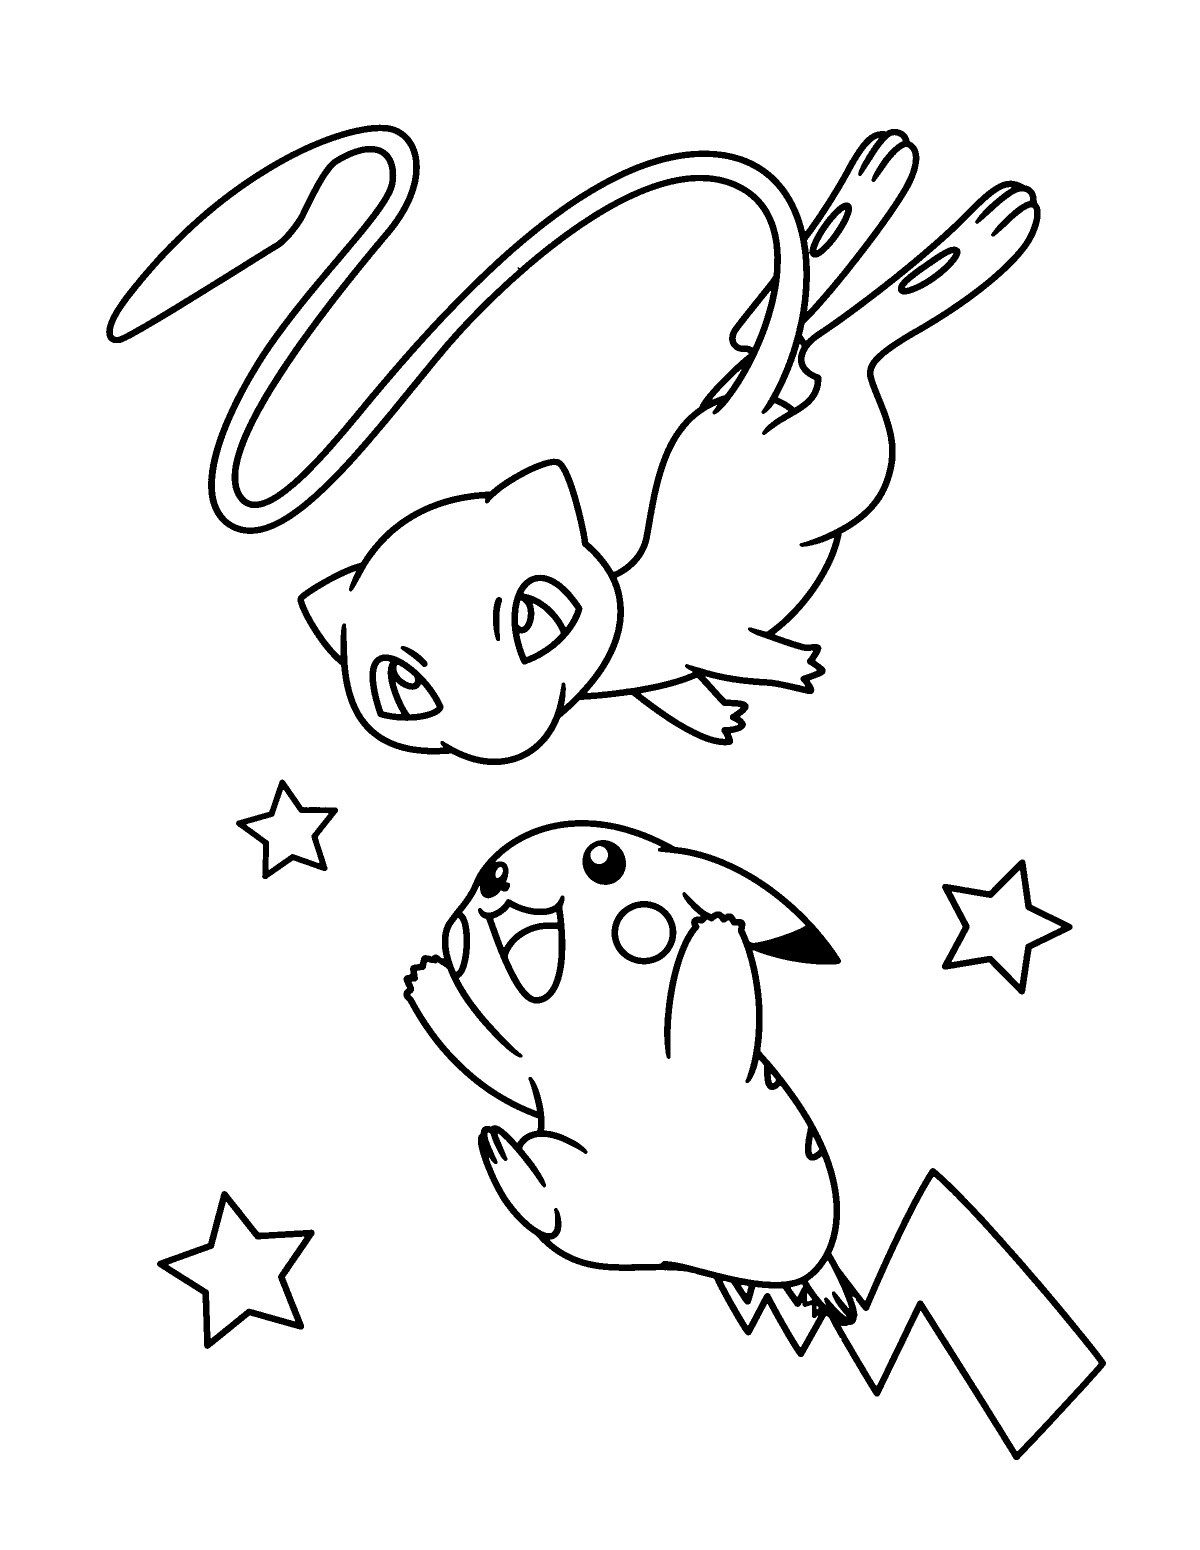 Easy To Color Mew Coloring Pages Coloriage Pokemon Dessin Pokemon A Imprimer Coloriage Pokemon A Imprimer